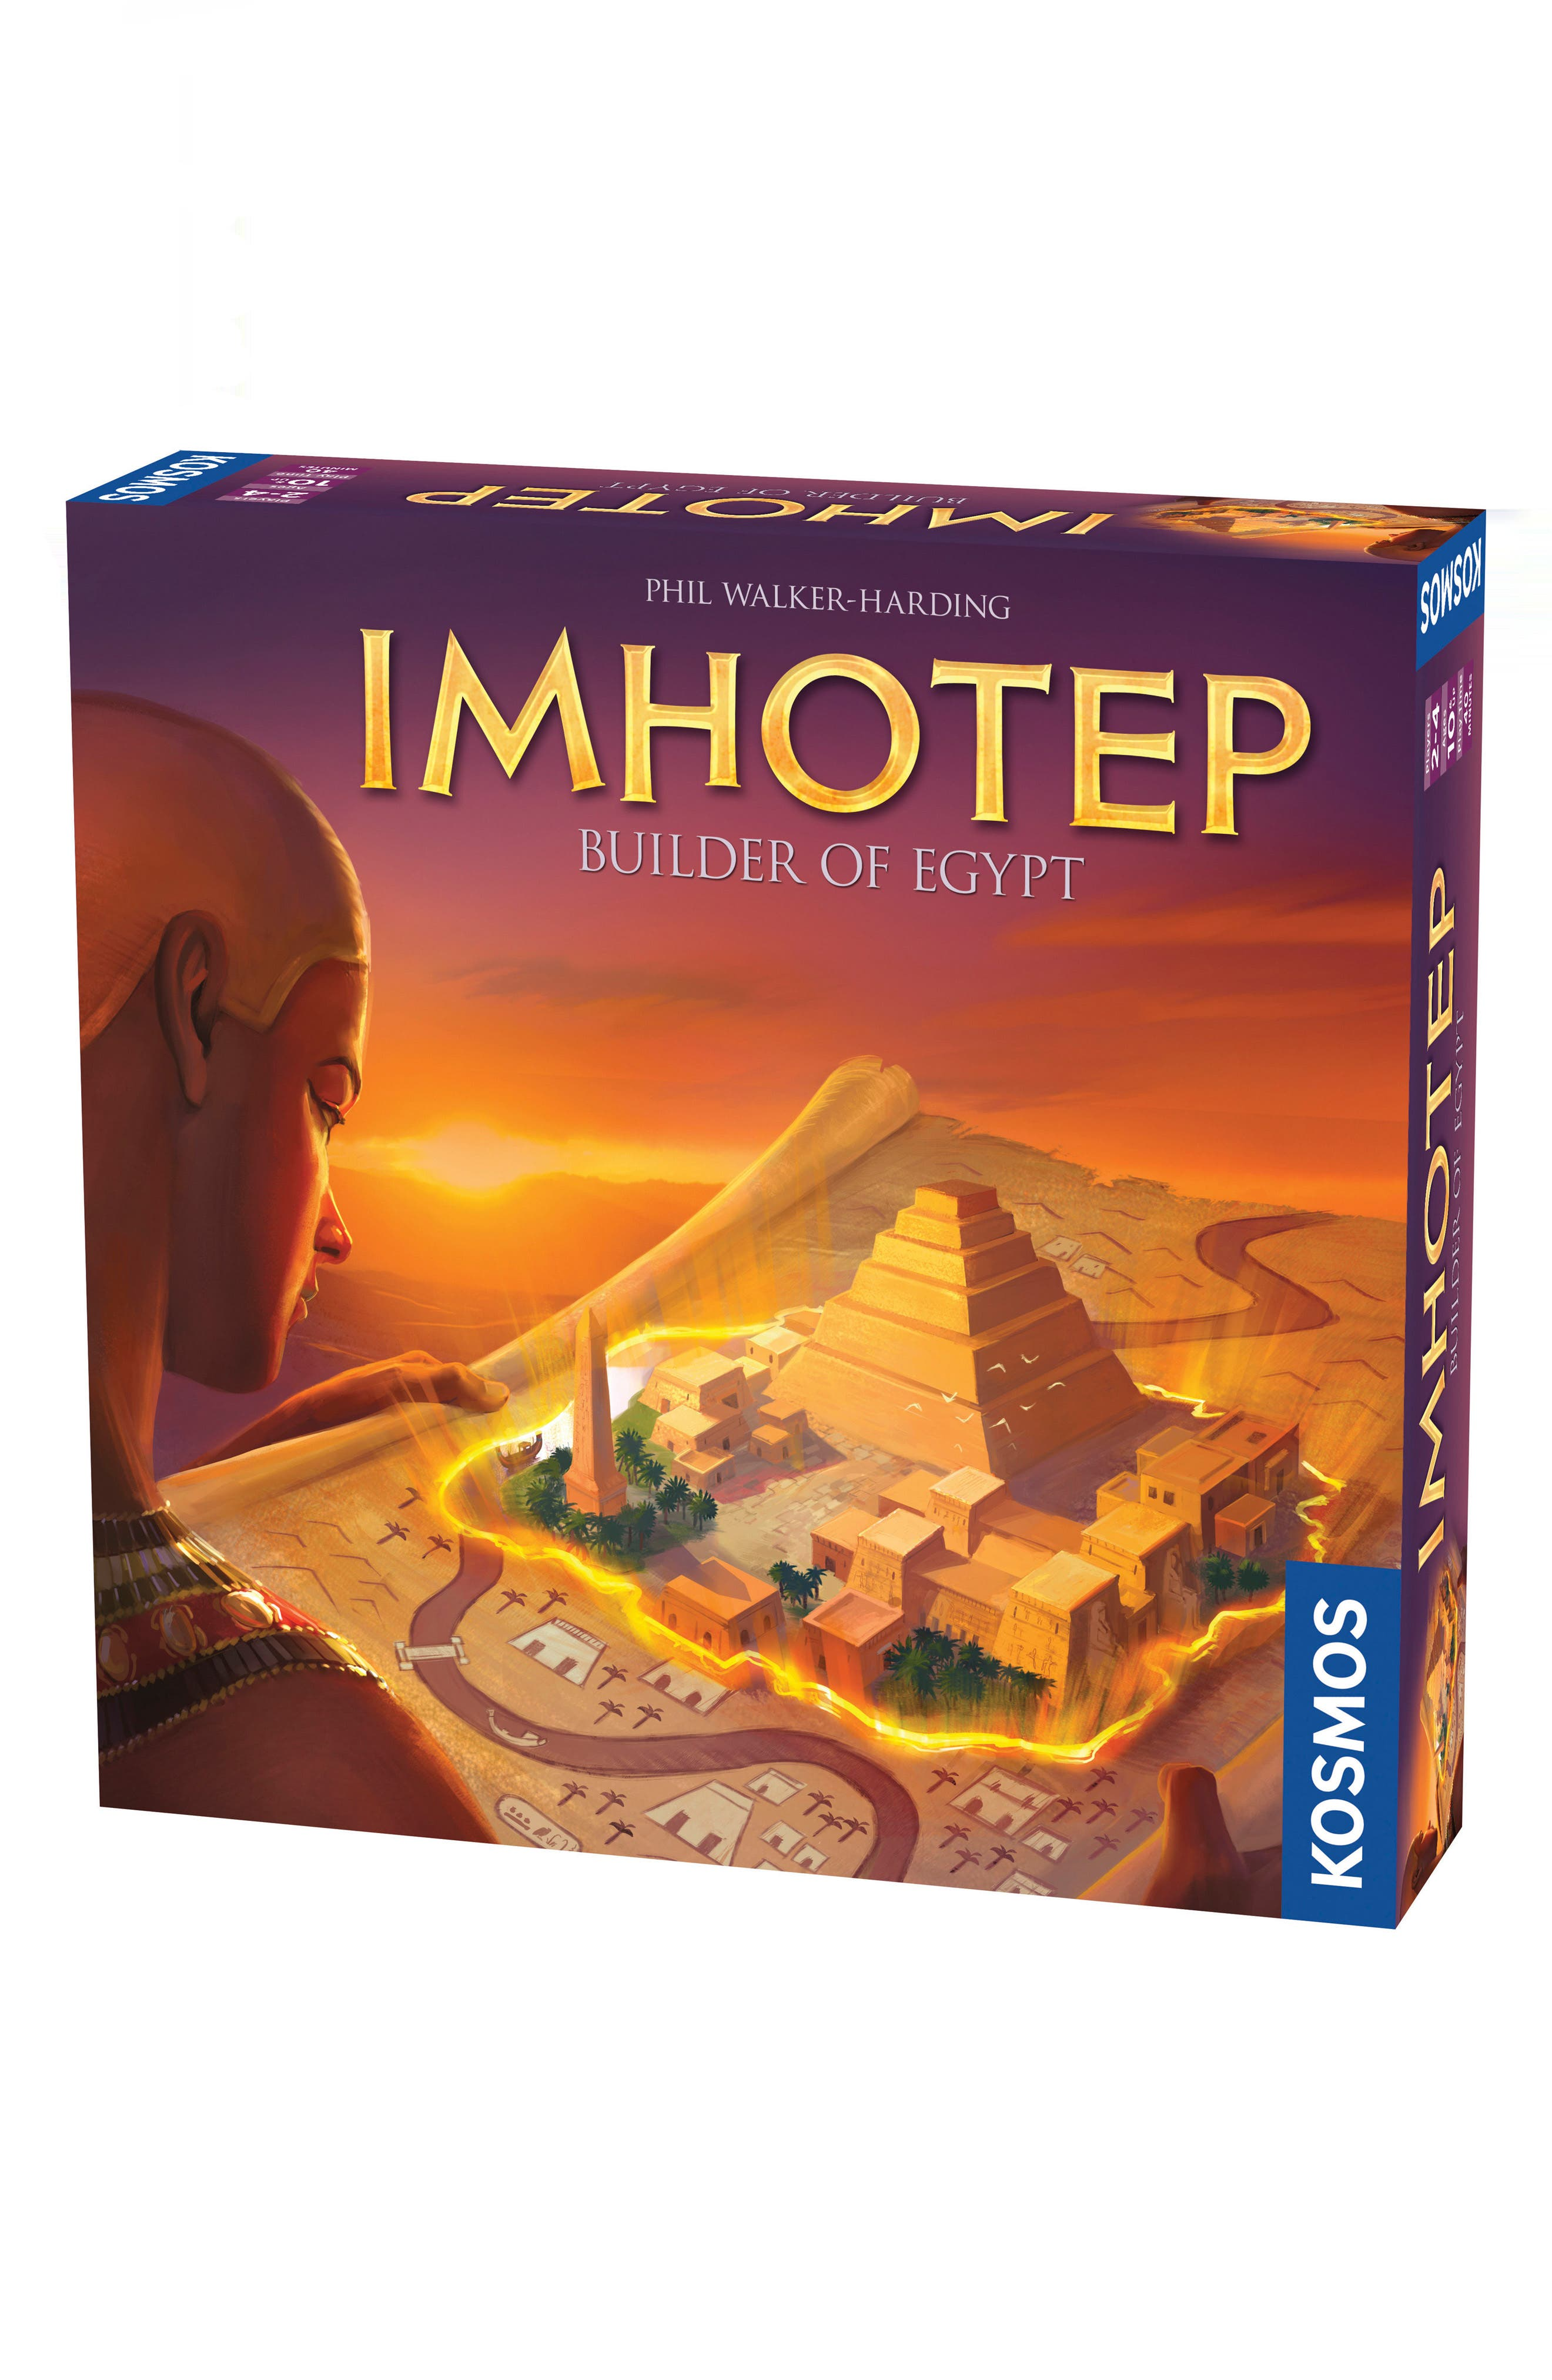 Main Image - Thames & Kosmos Imhotep - Builder of Egypt Board Game